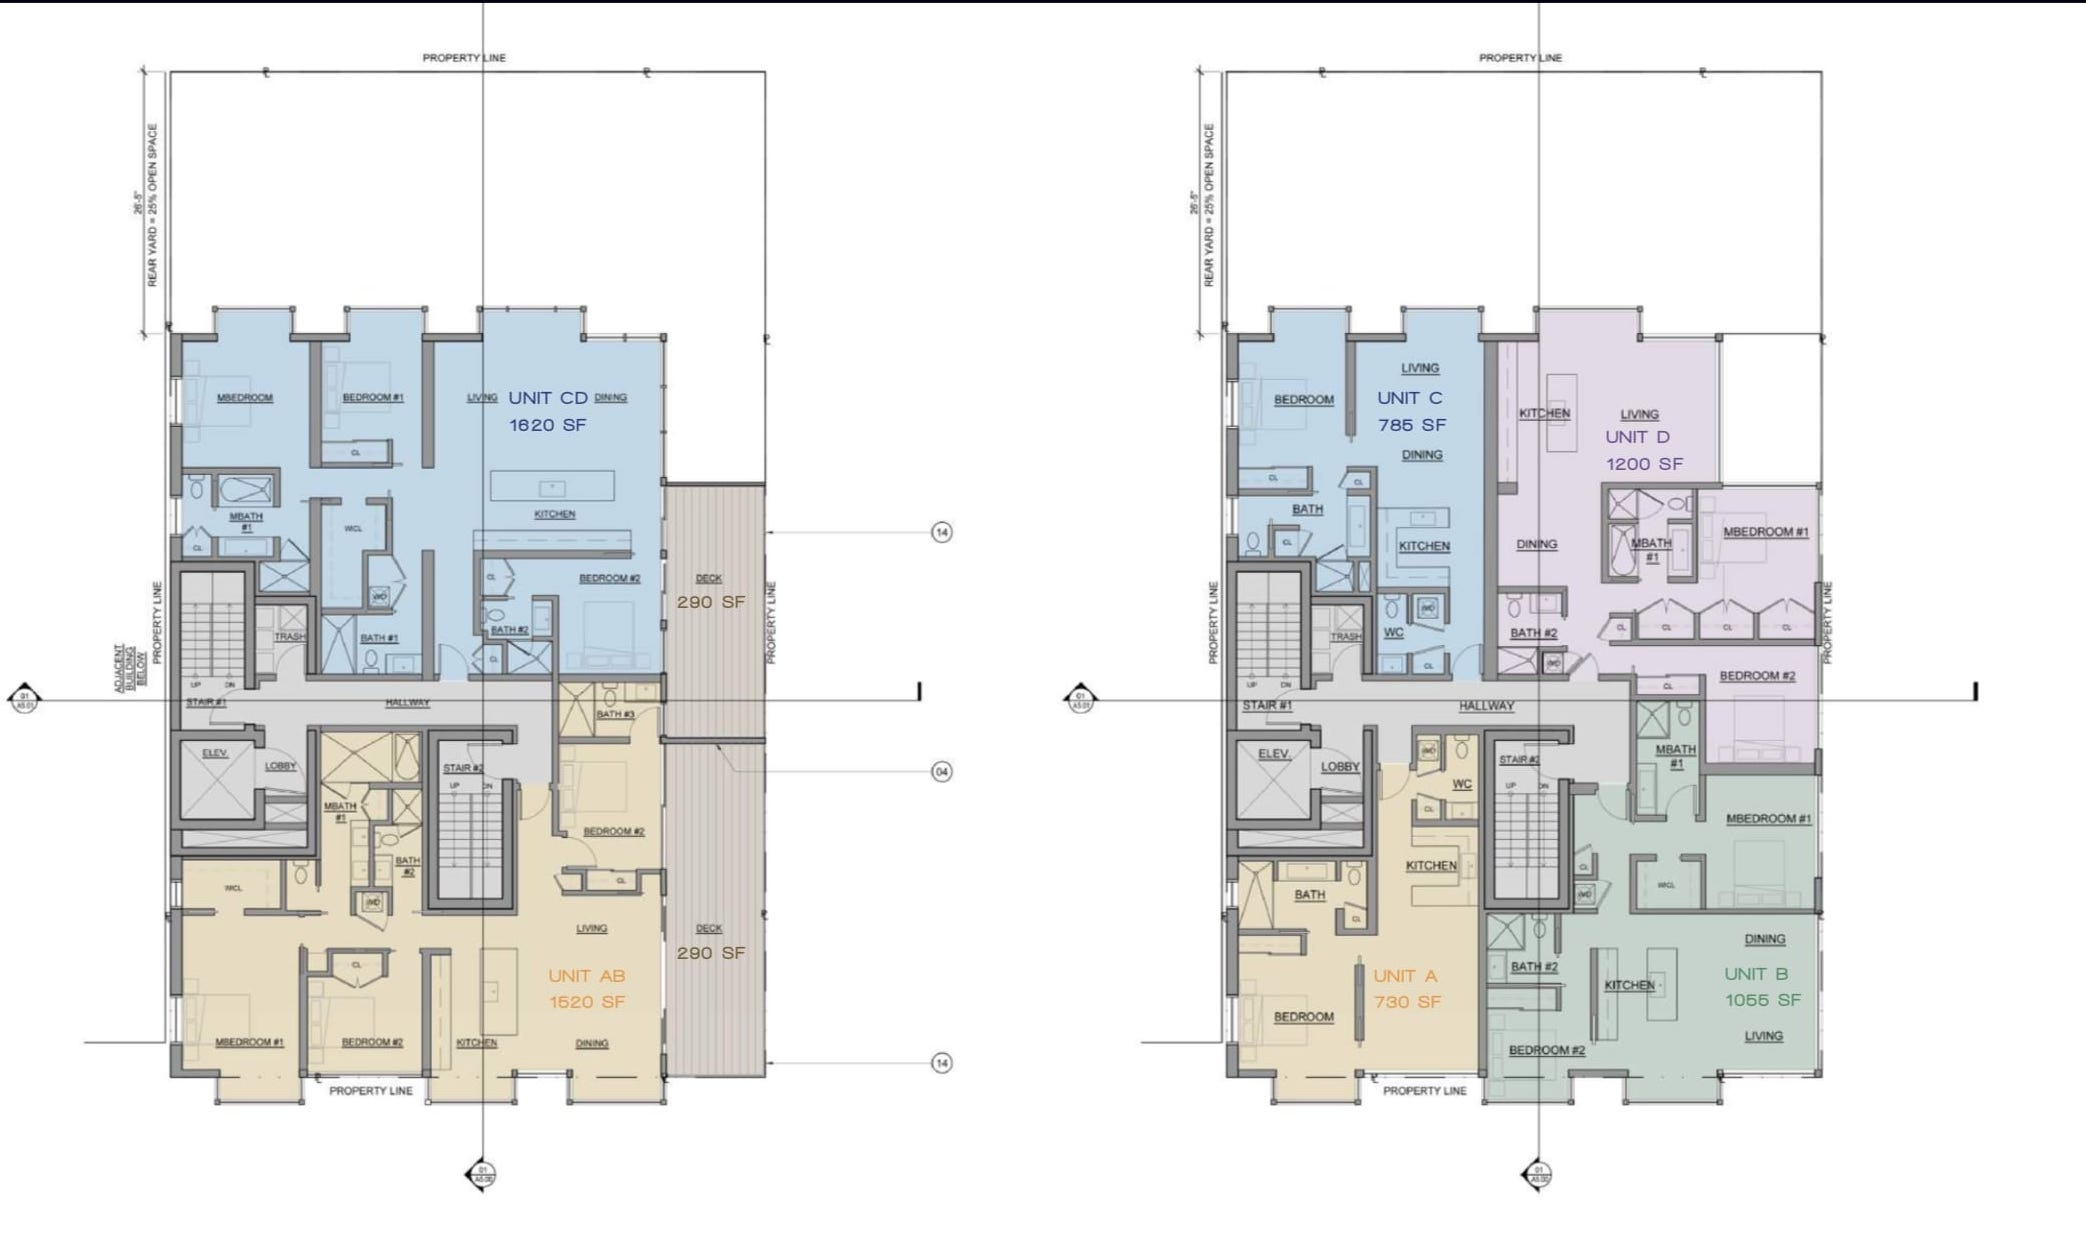 842 California St Floor Plans 5th and 6th